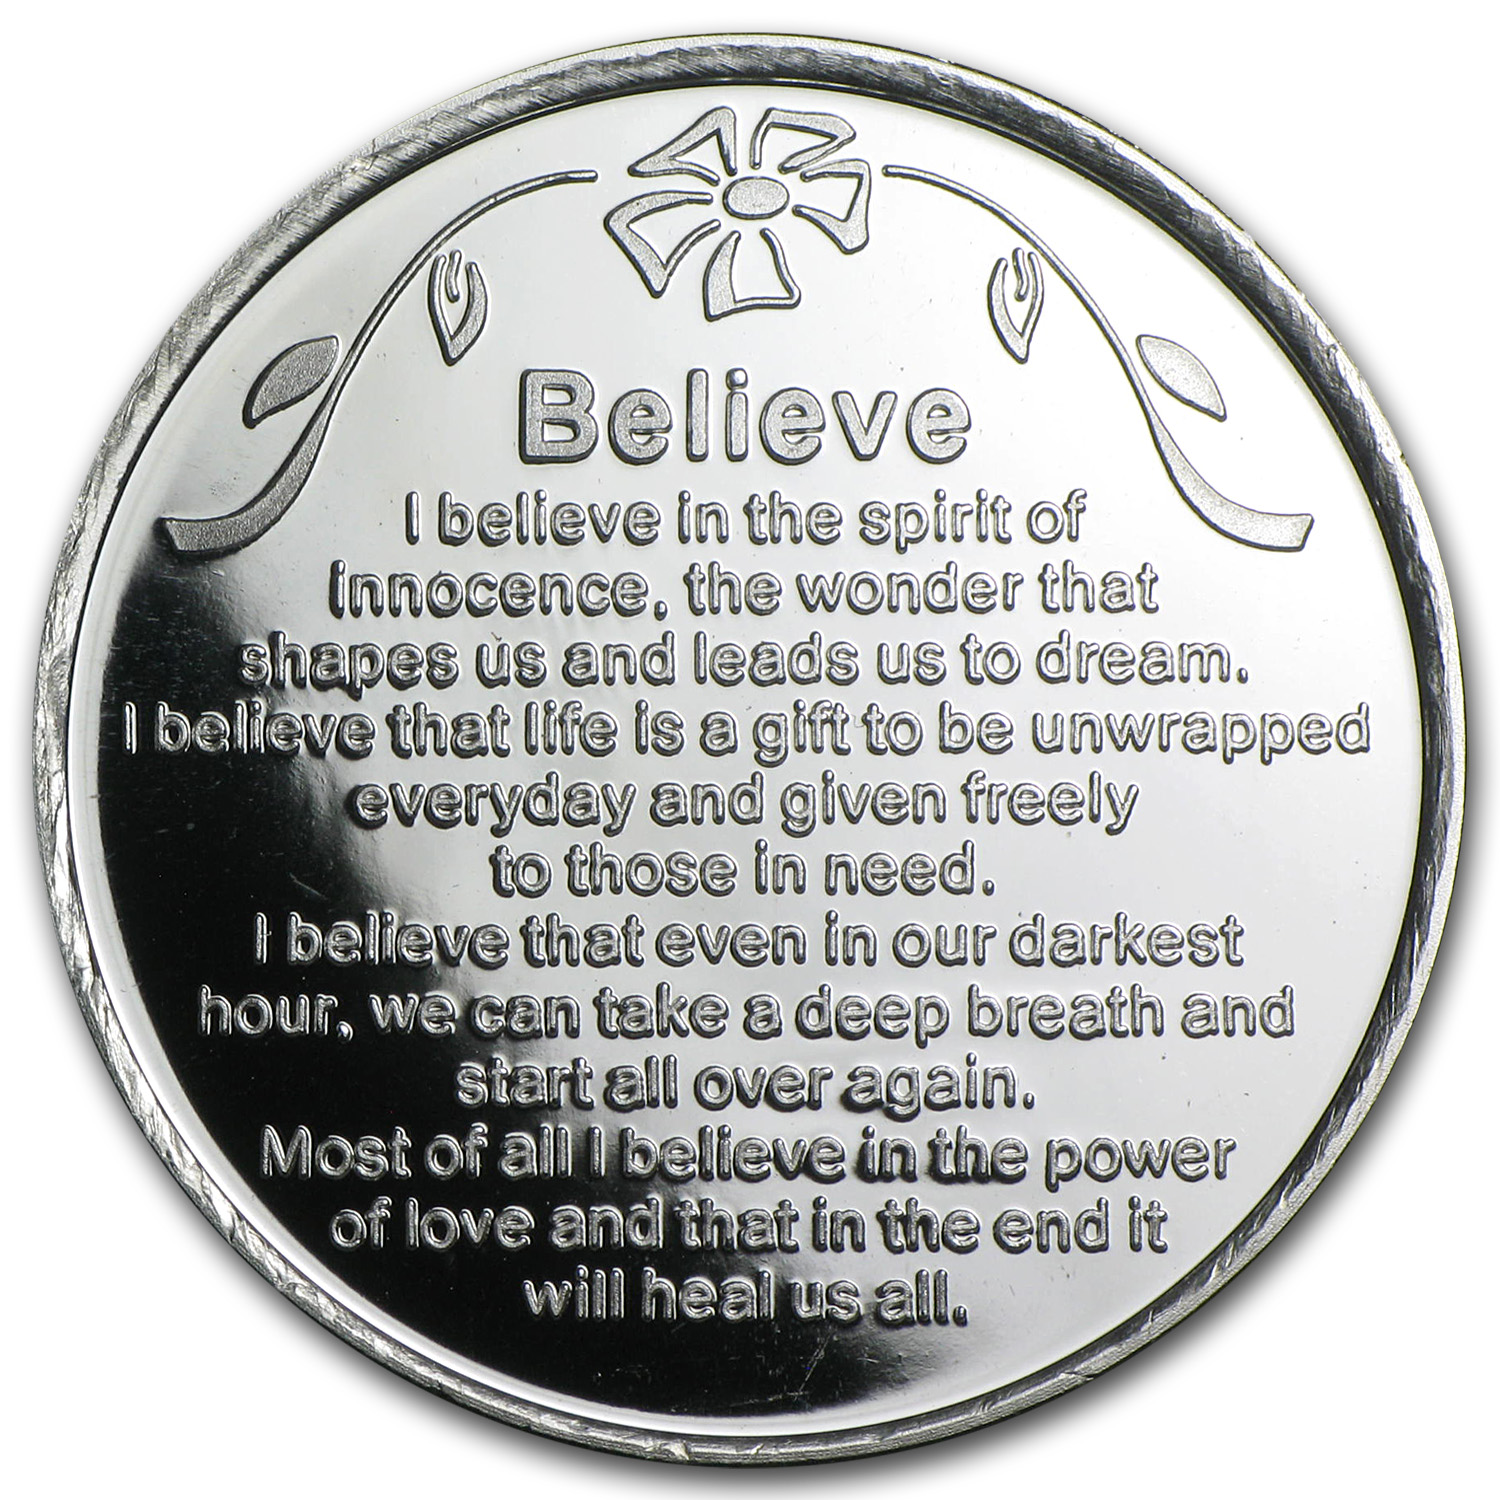 1 oz Silver Rounds - Believe (w/Box & Capsule)